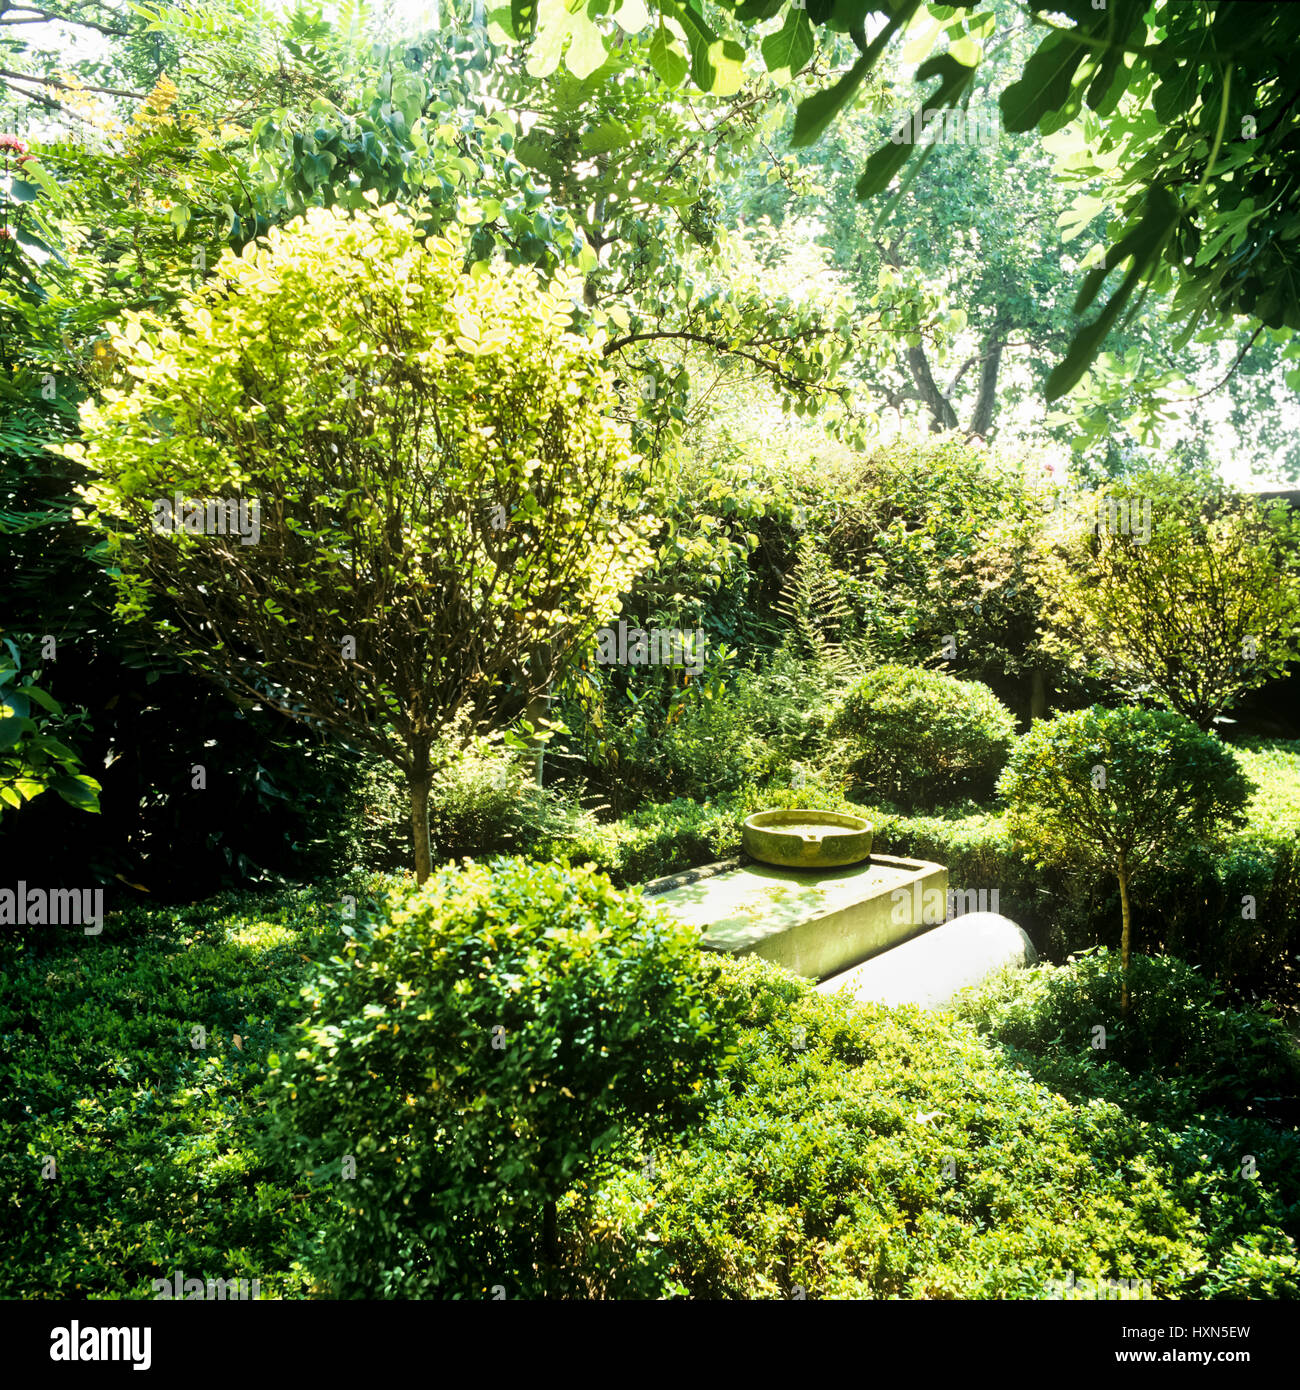 Garden with trees. - Stock Image